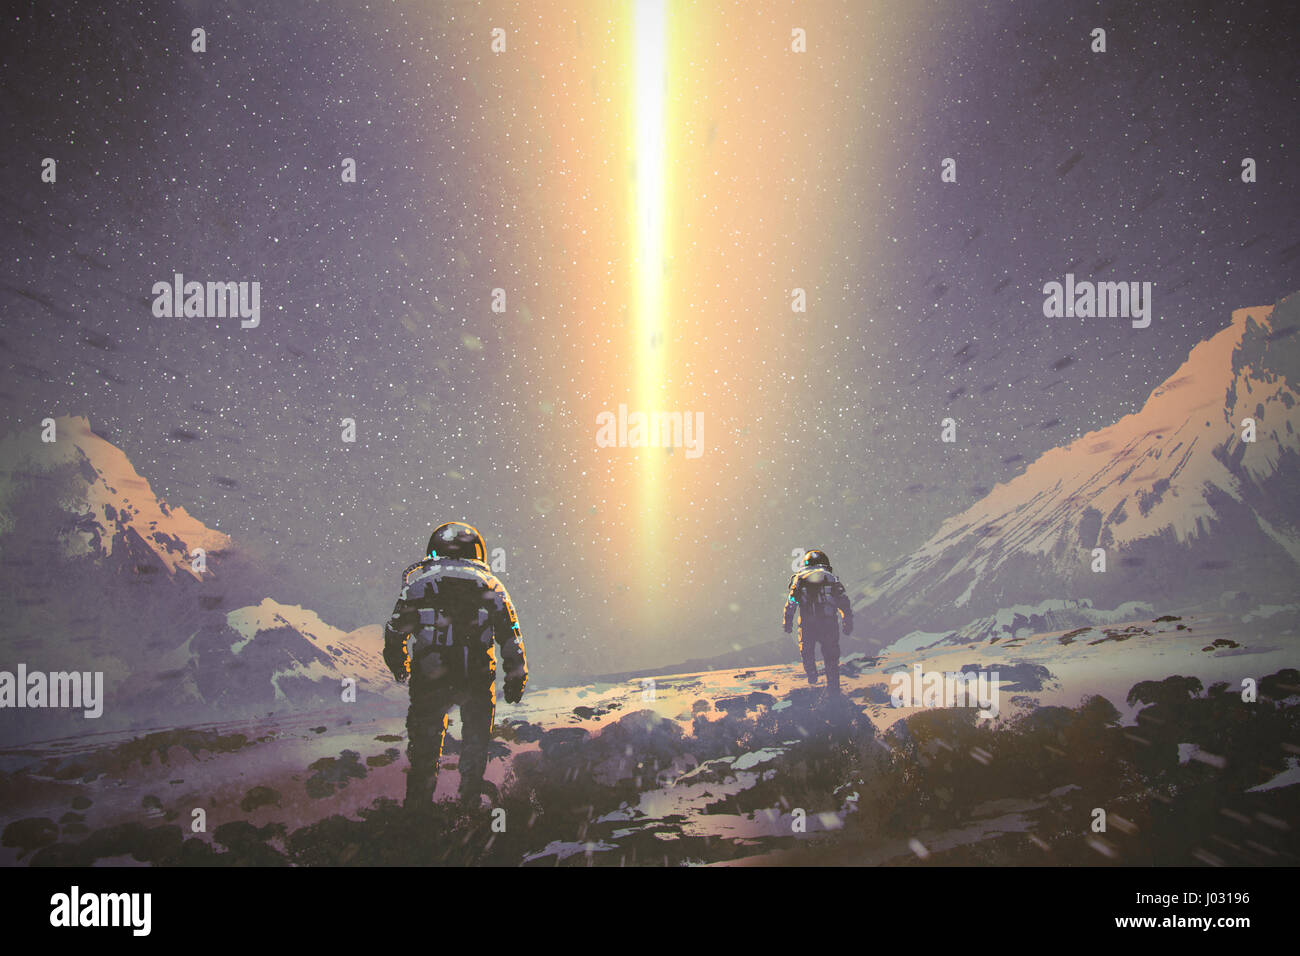 astronauts walking to mystery light beam from the sky, sci-fi concept, illustration painting - Stock Image